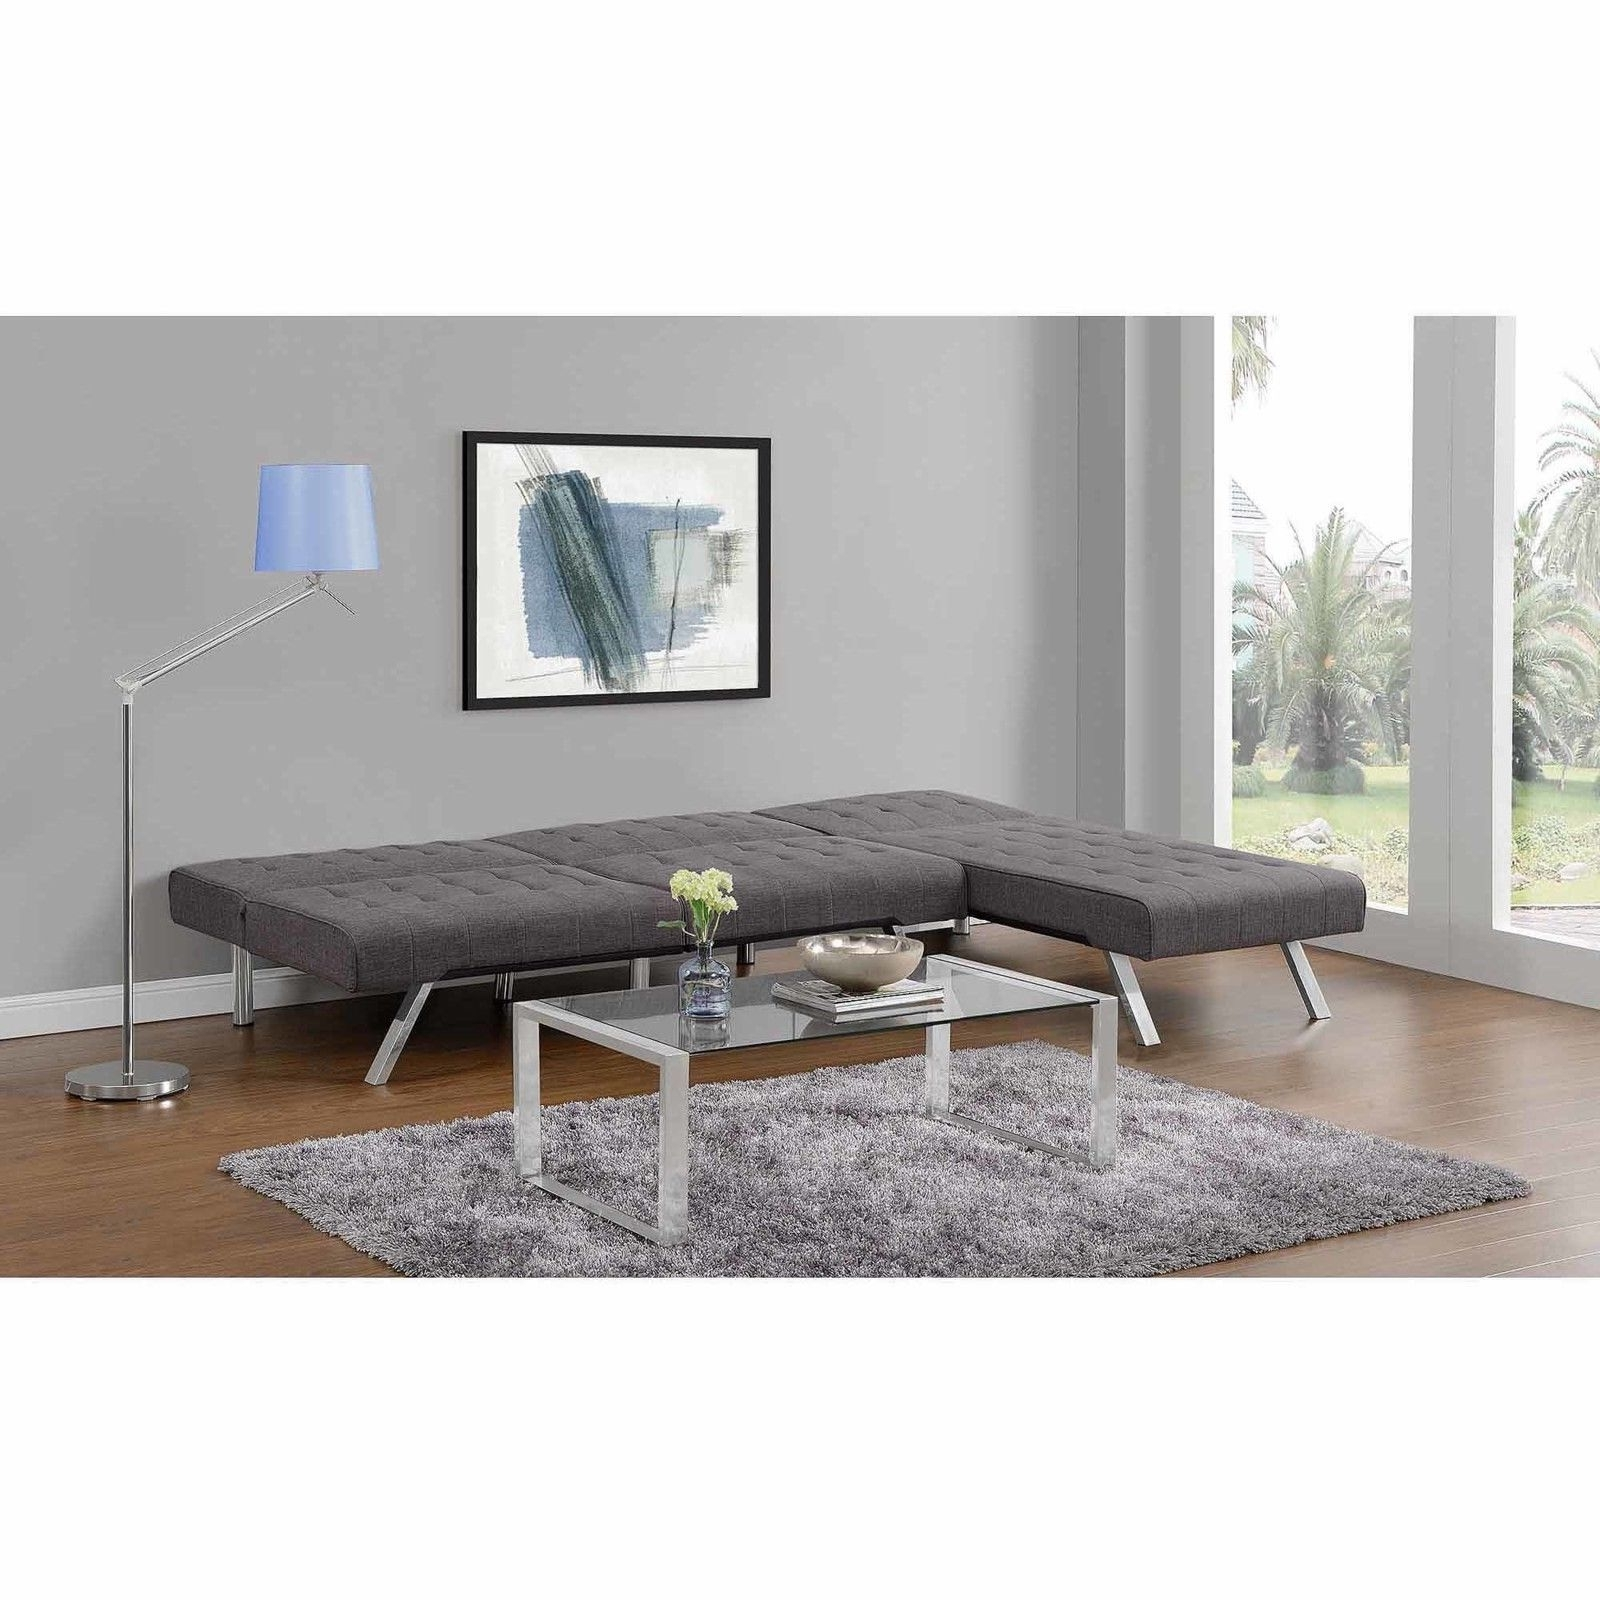 Dhp Emily Linen Chaise Lounger Gray Chair 2024429  (View 4 of 15)